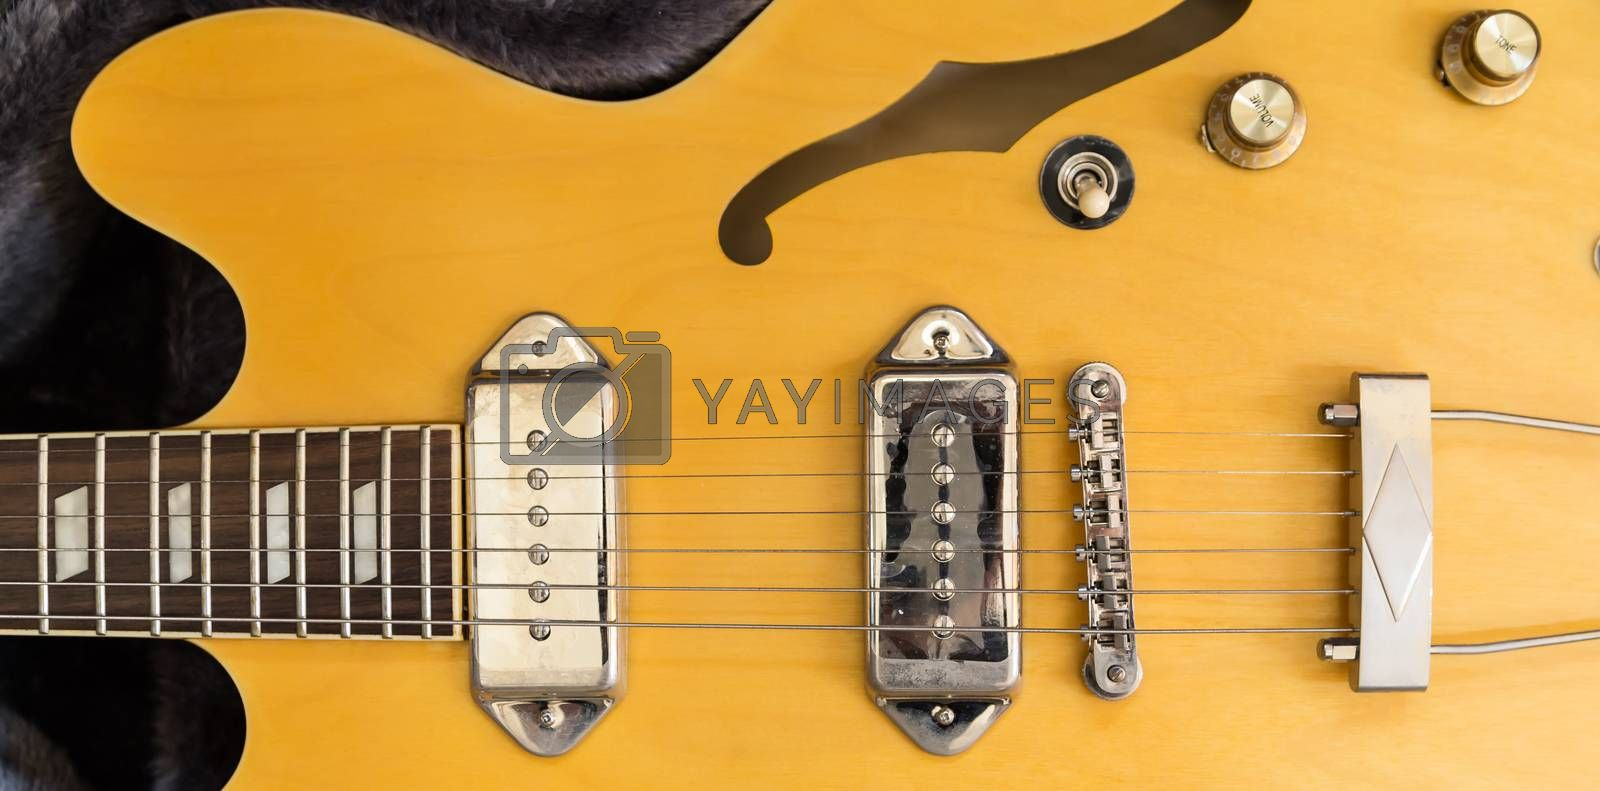 It's a part of body of a yellow electric guitar which made from wood and metal. There are 6-sling component which fix with the bar and it has a hold beside.